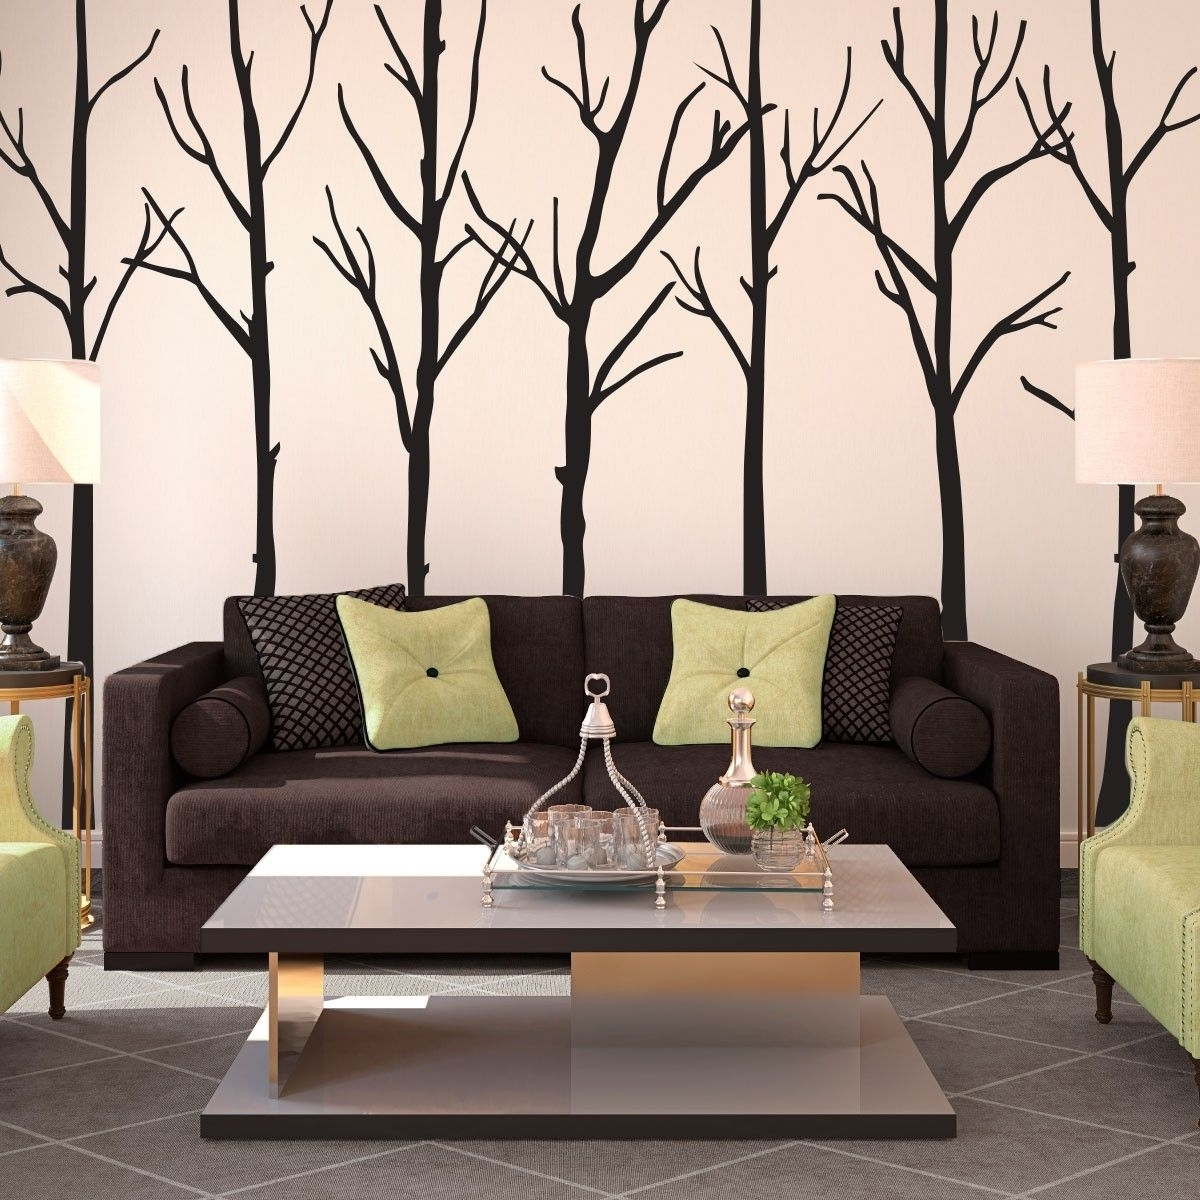 2017 Contemporary Wall Art Decors With Elegant Wall Art Ideas Amazon (View 6 of 15)